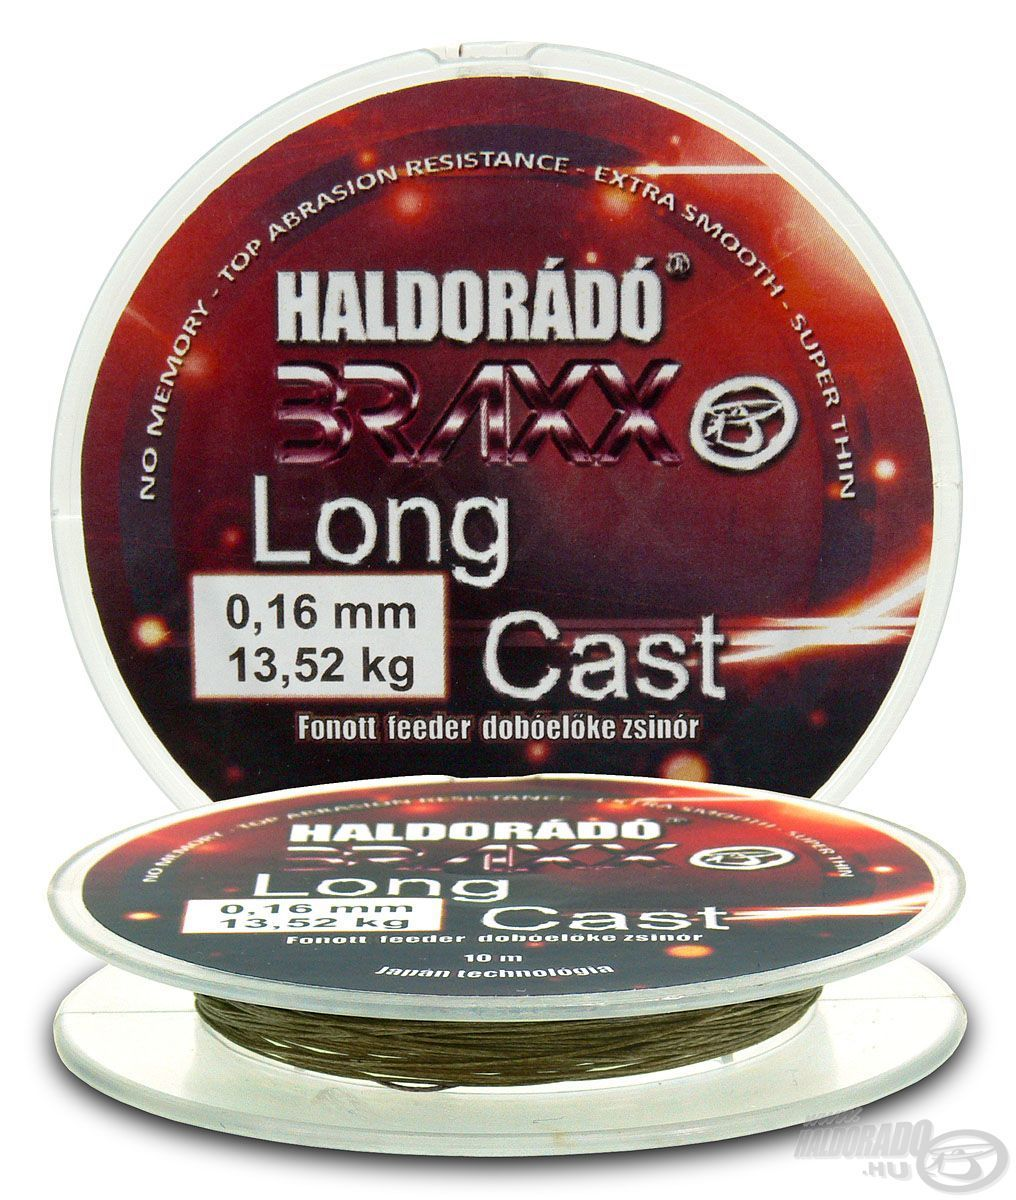 HALDOR�D�, Braxx Long Cast 0,18 mm